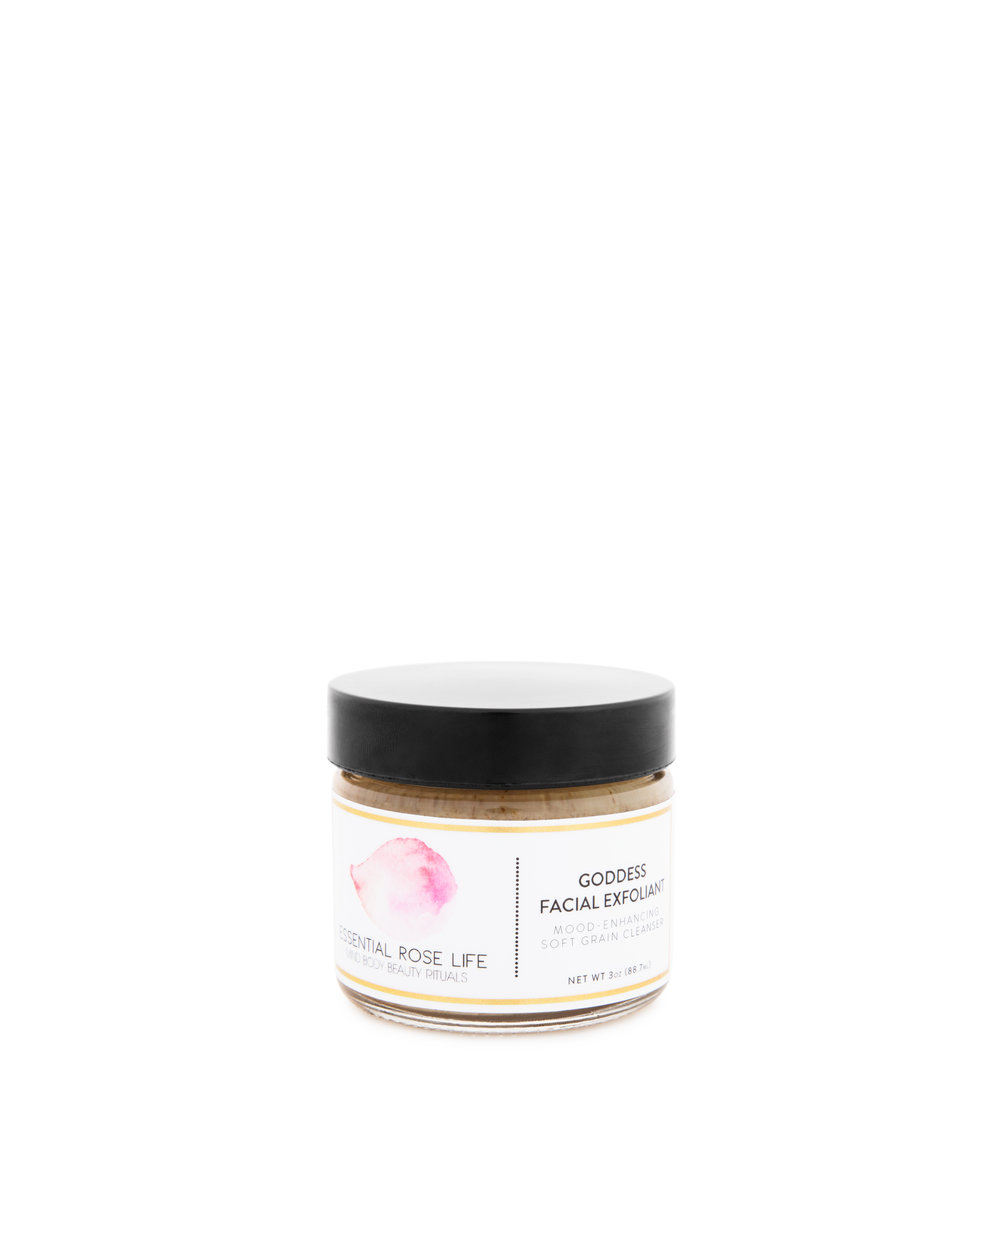 GODDESS FACIAL EXFOLIANT *BEST SELLER* $25